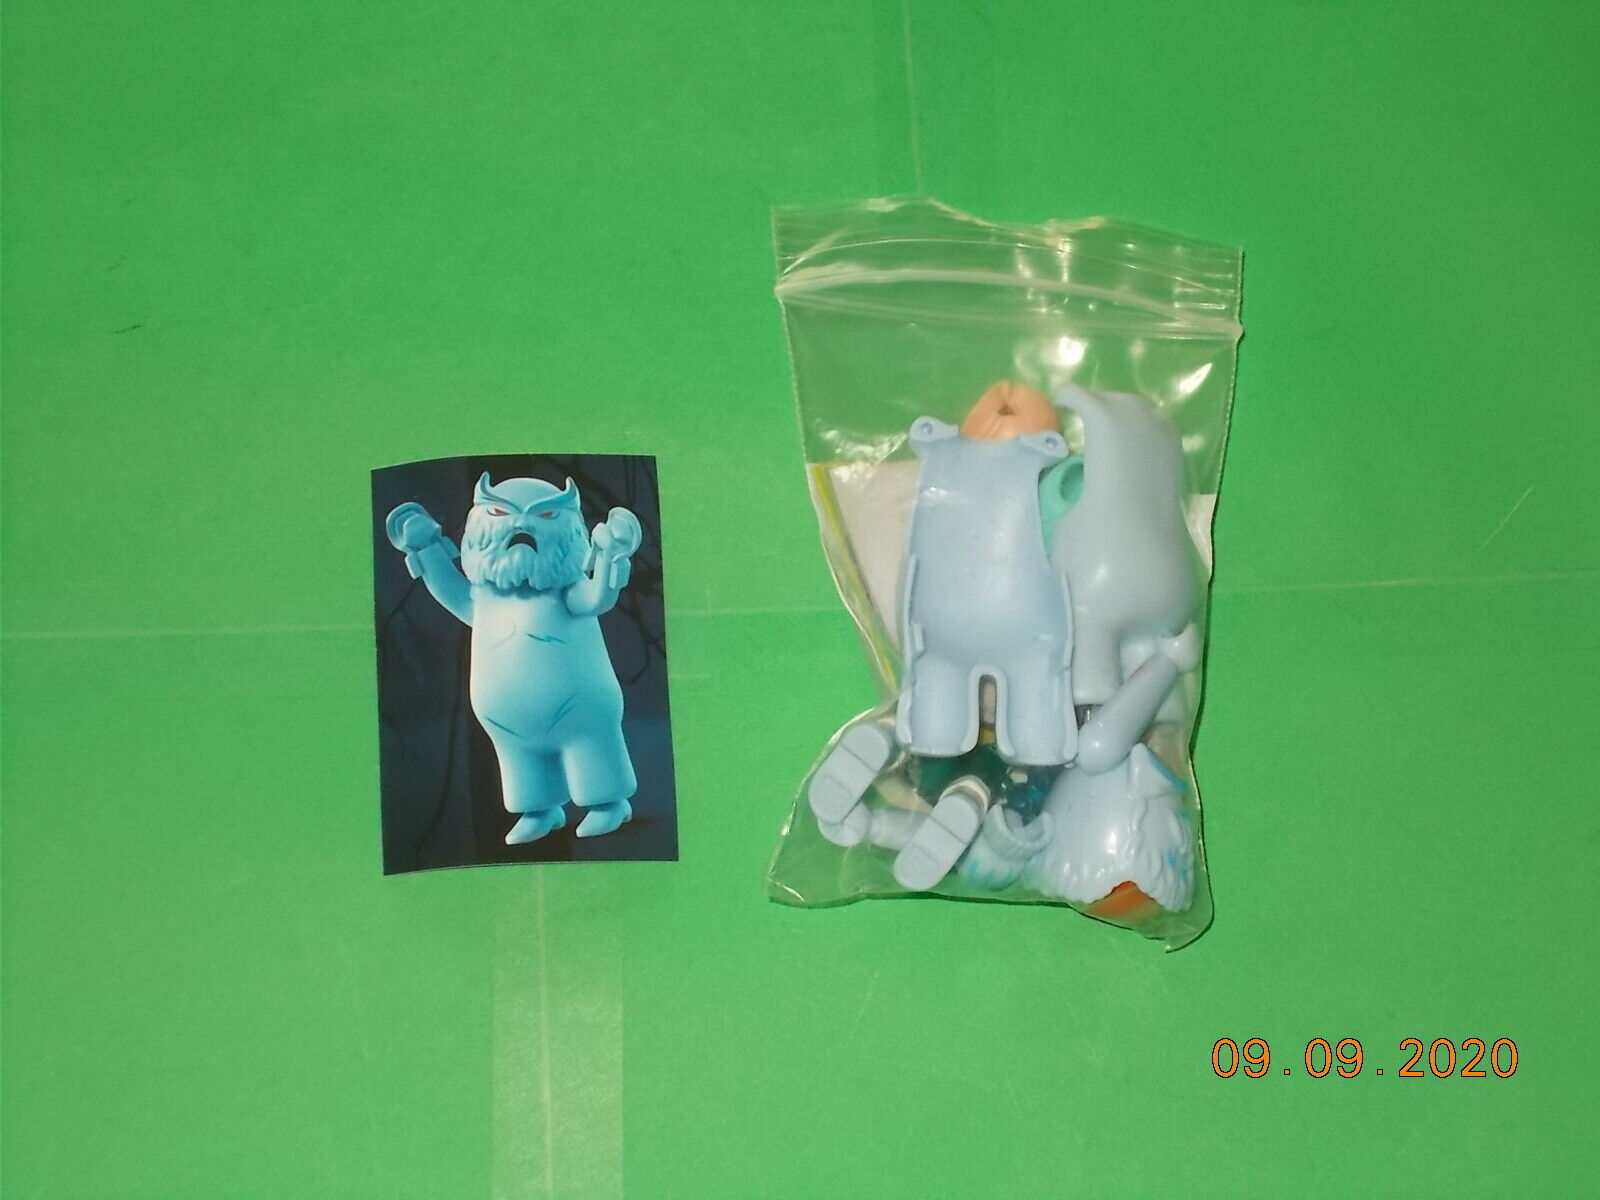 Lego - Playmobil - Scooby Doo Ghosts - Series 1 - Snow Ghost - 70288